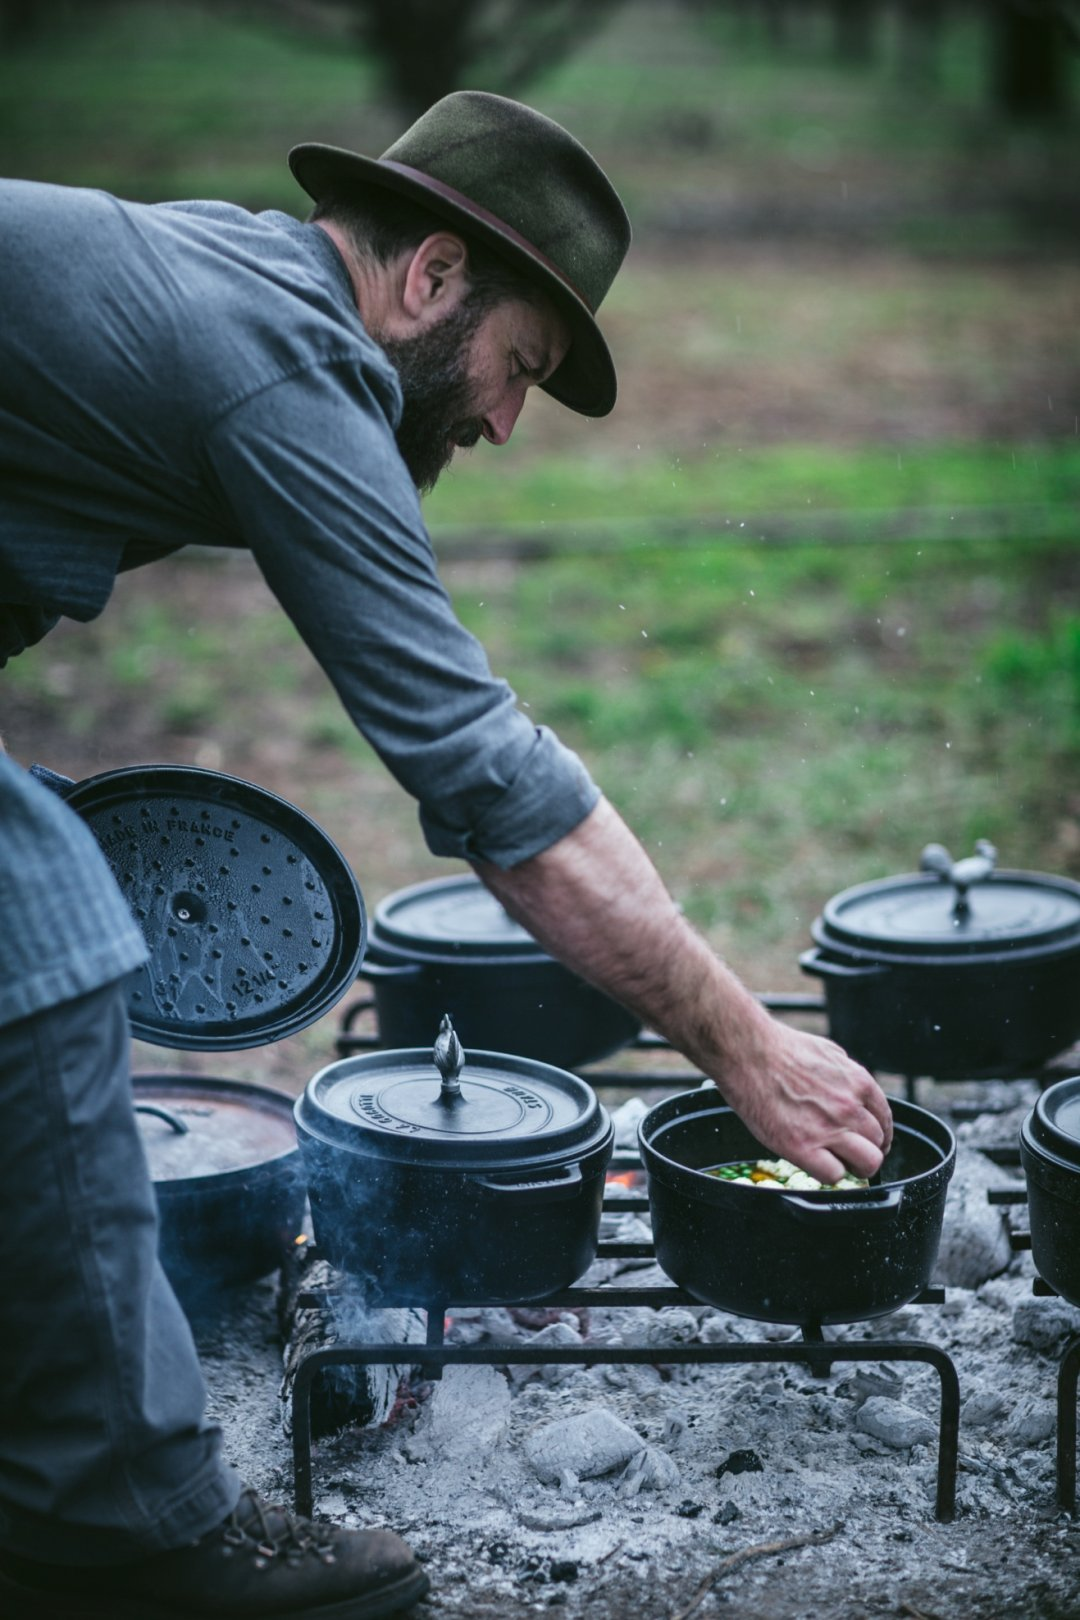 Man checking on pot of food over grill built into ground with other pots cooking